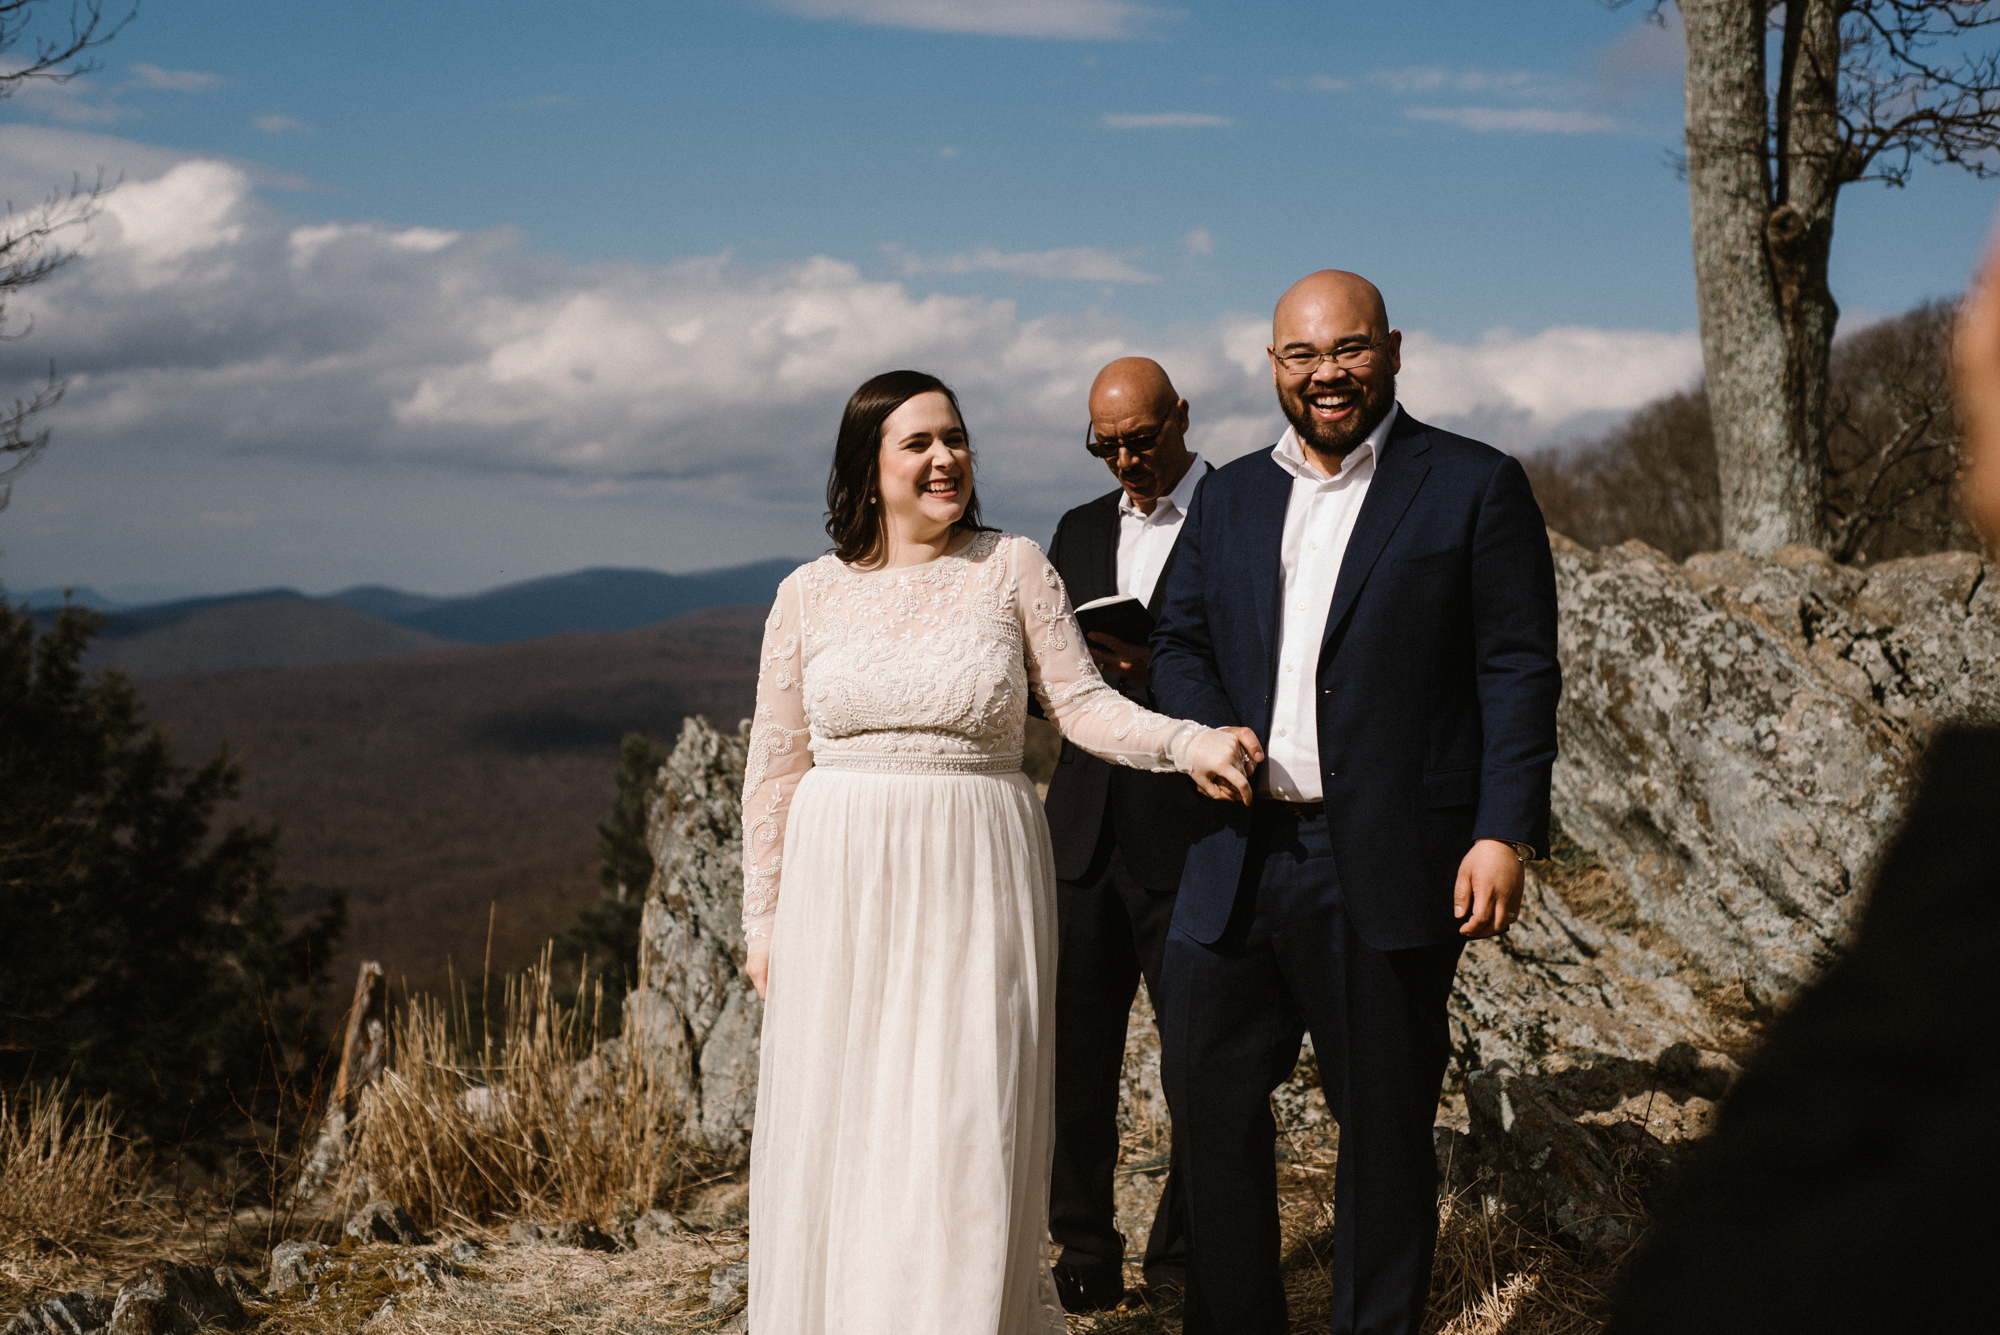 Emma and Jeddah - Intimate Luray Wedding - Shenandoah National Park Wedding - Adventure Elopement in Virginia - Shenandoah National Park Elopement_37.jpg